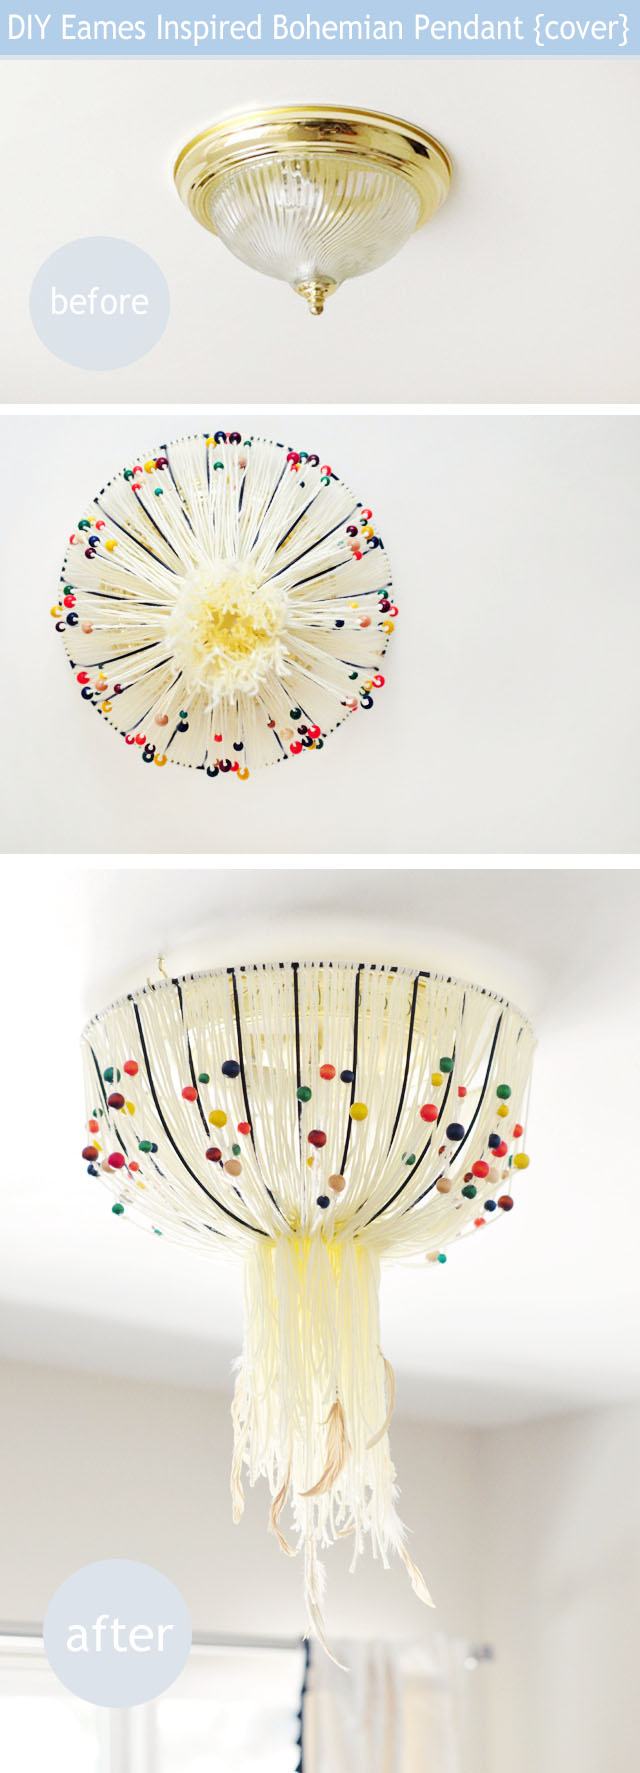 DIY Eames Inspired Bohemian Pendant Lamp {Cover} w/out